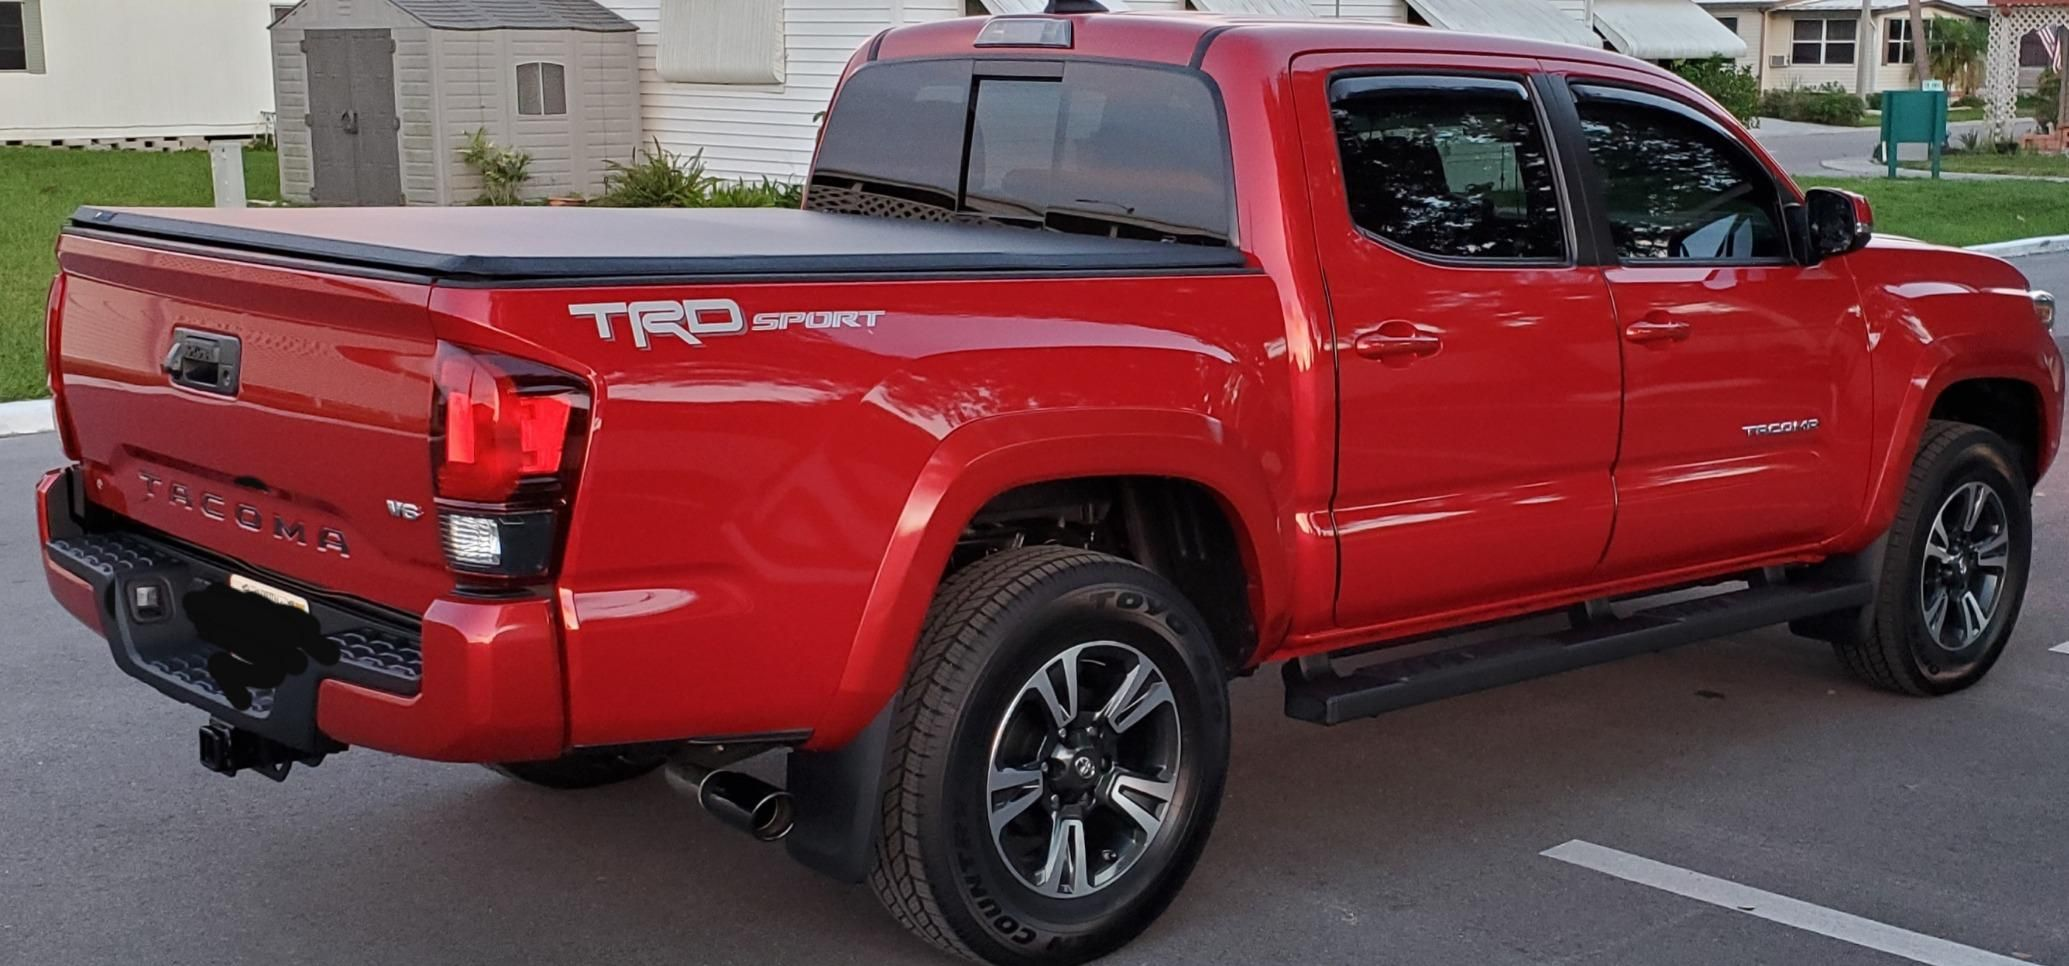 2019 TRD Sport Red in 2020 Truck bed accessories